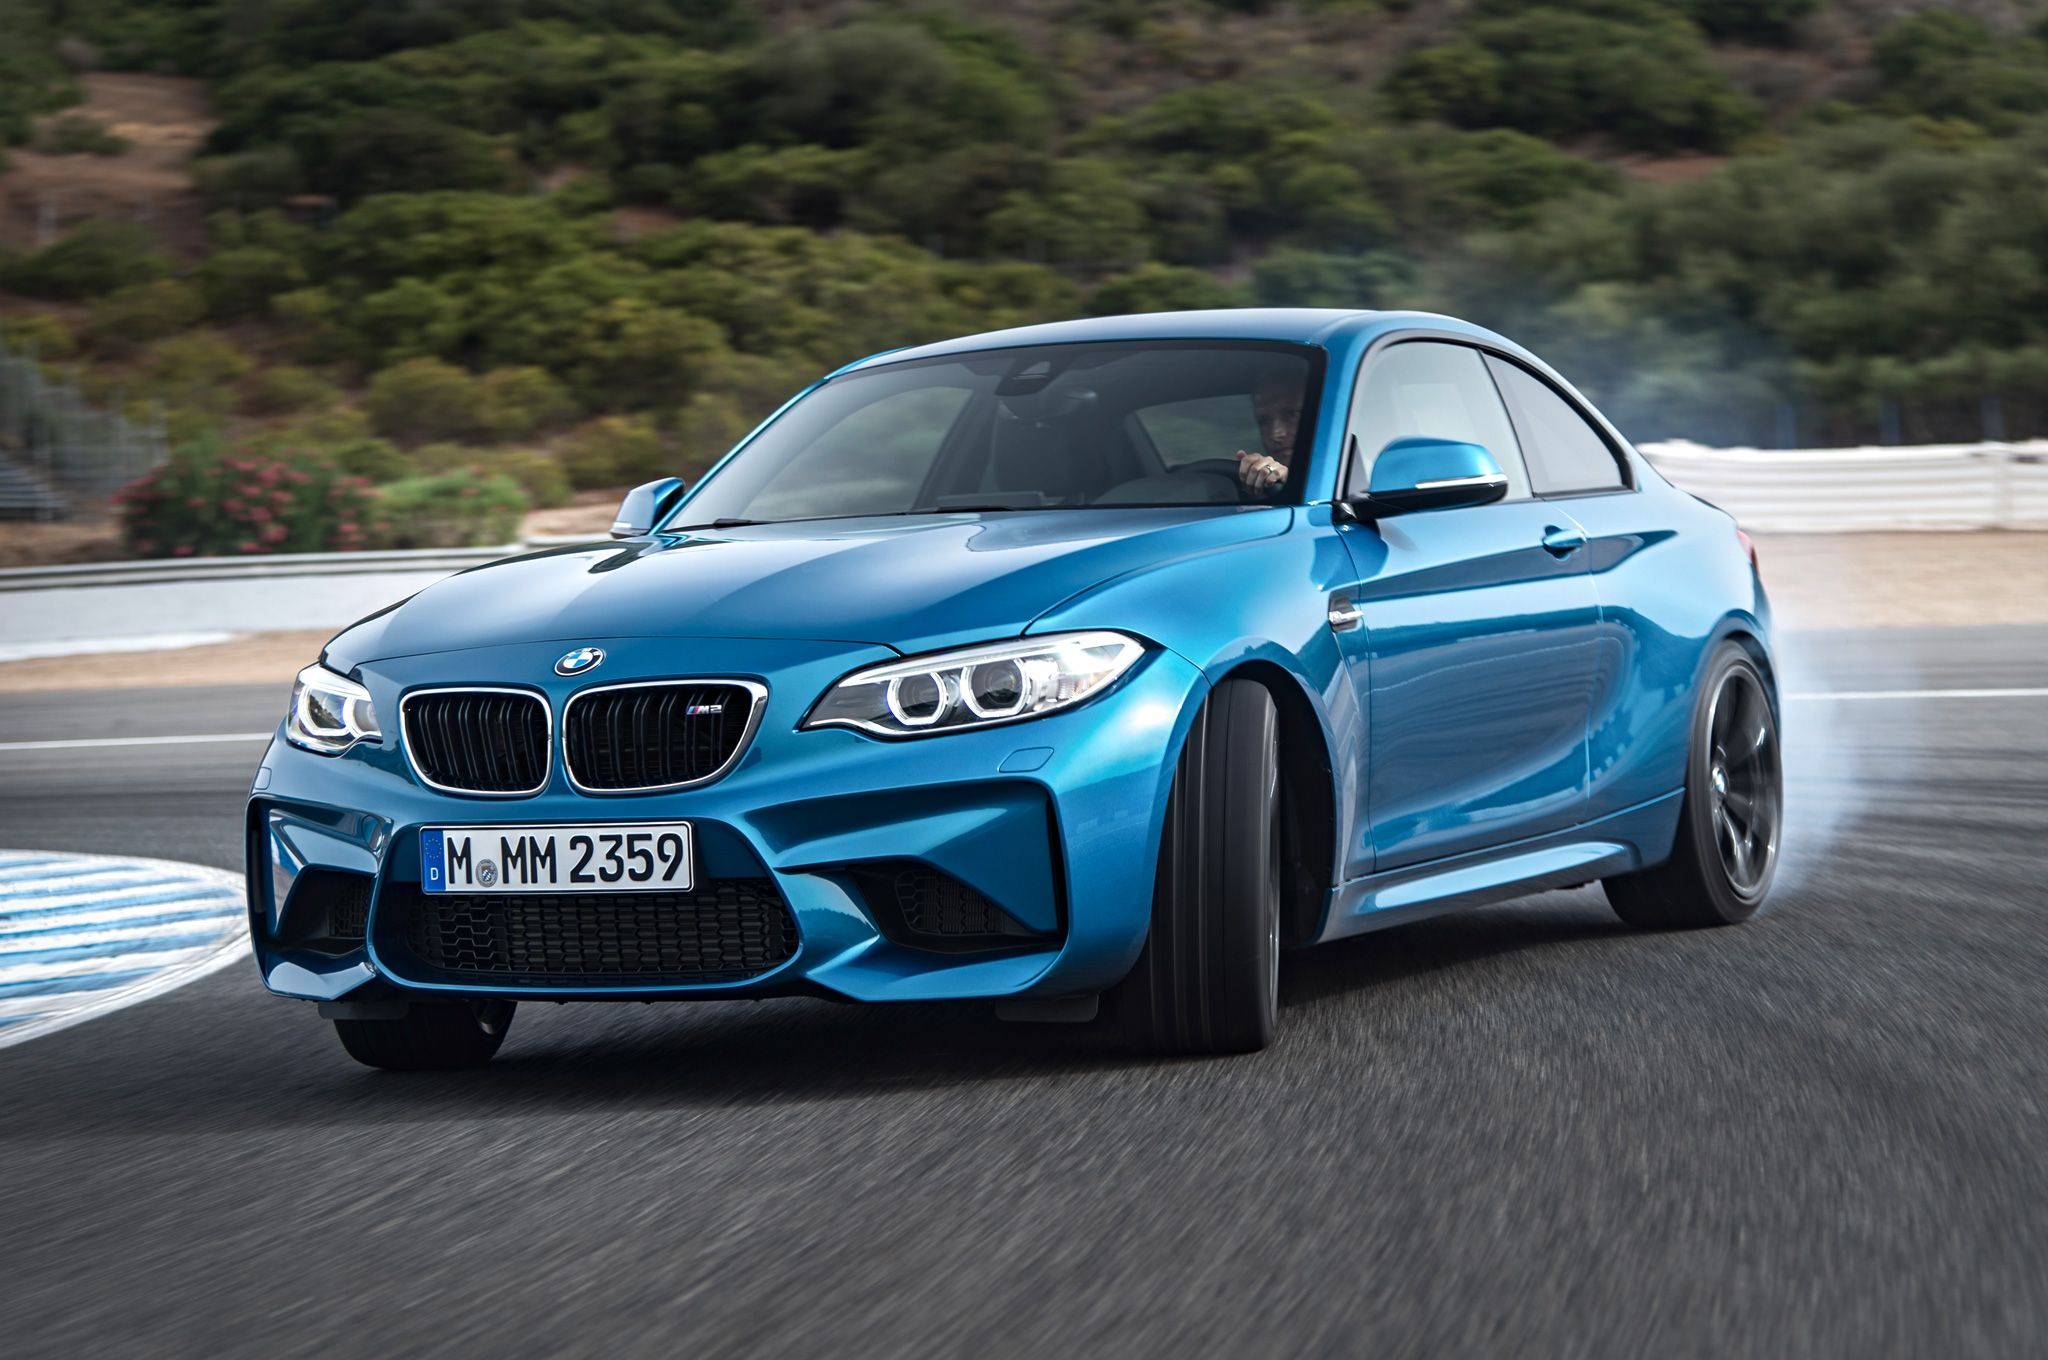 Bmw s dealership ordering system appears to have leaked the upcoming m2 m performance edition ahead of